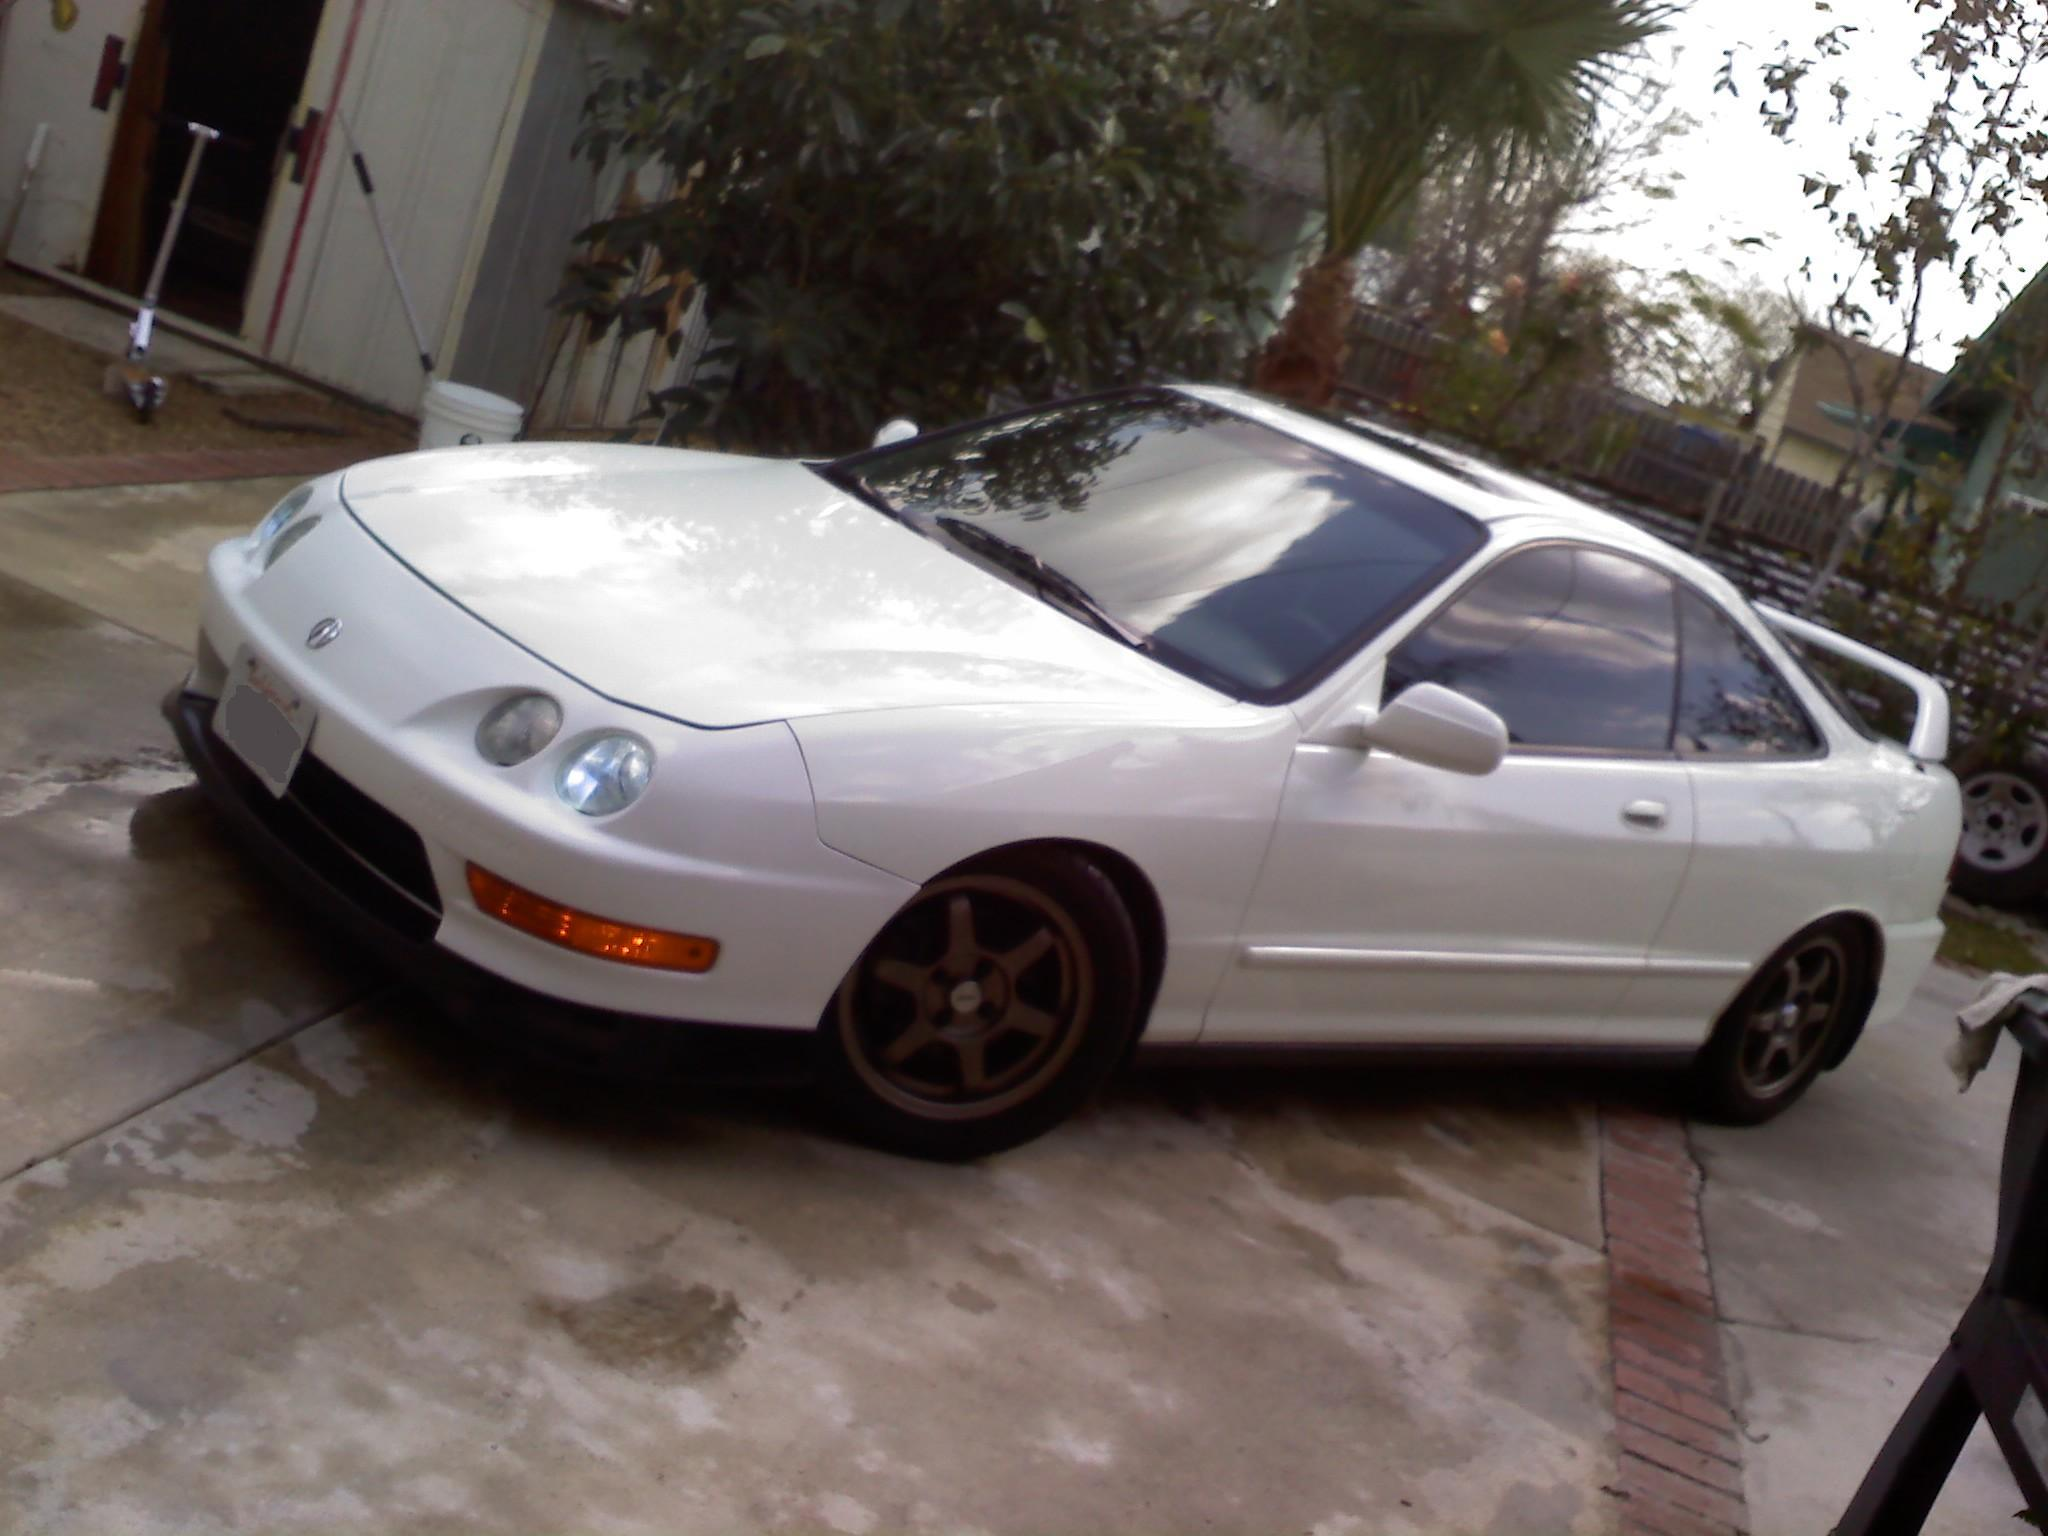 Falk3n16 1999 Acura Integrals Sport Coupe 2d Specs Photos Modification Info At Cardomain